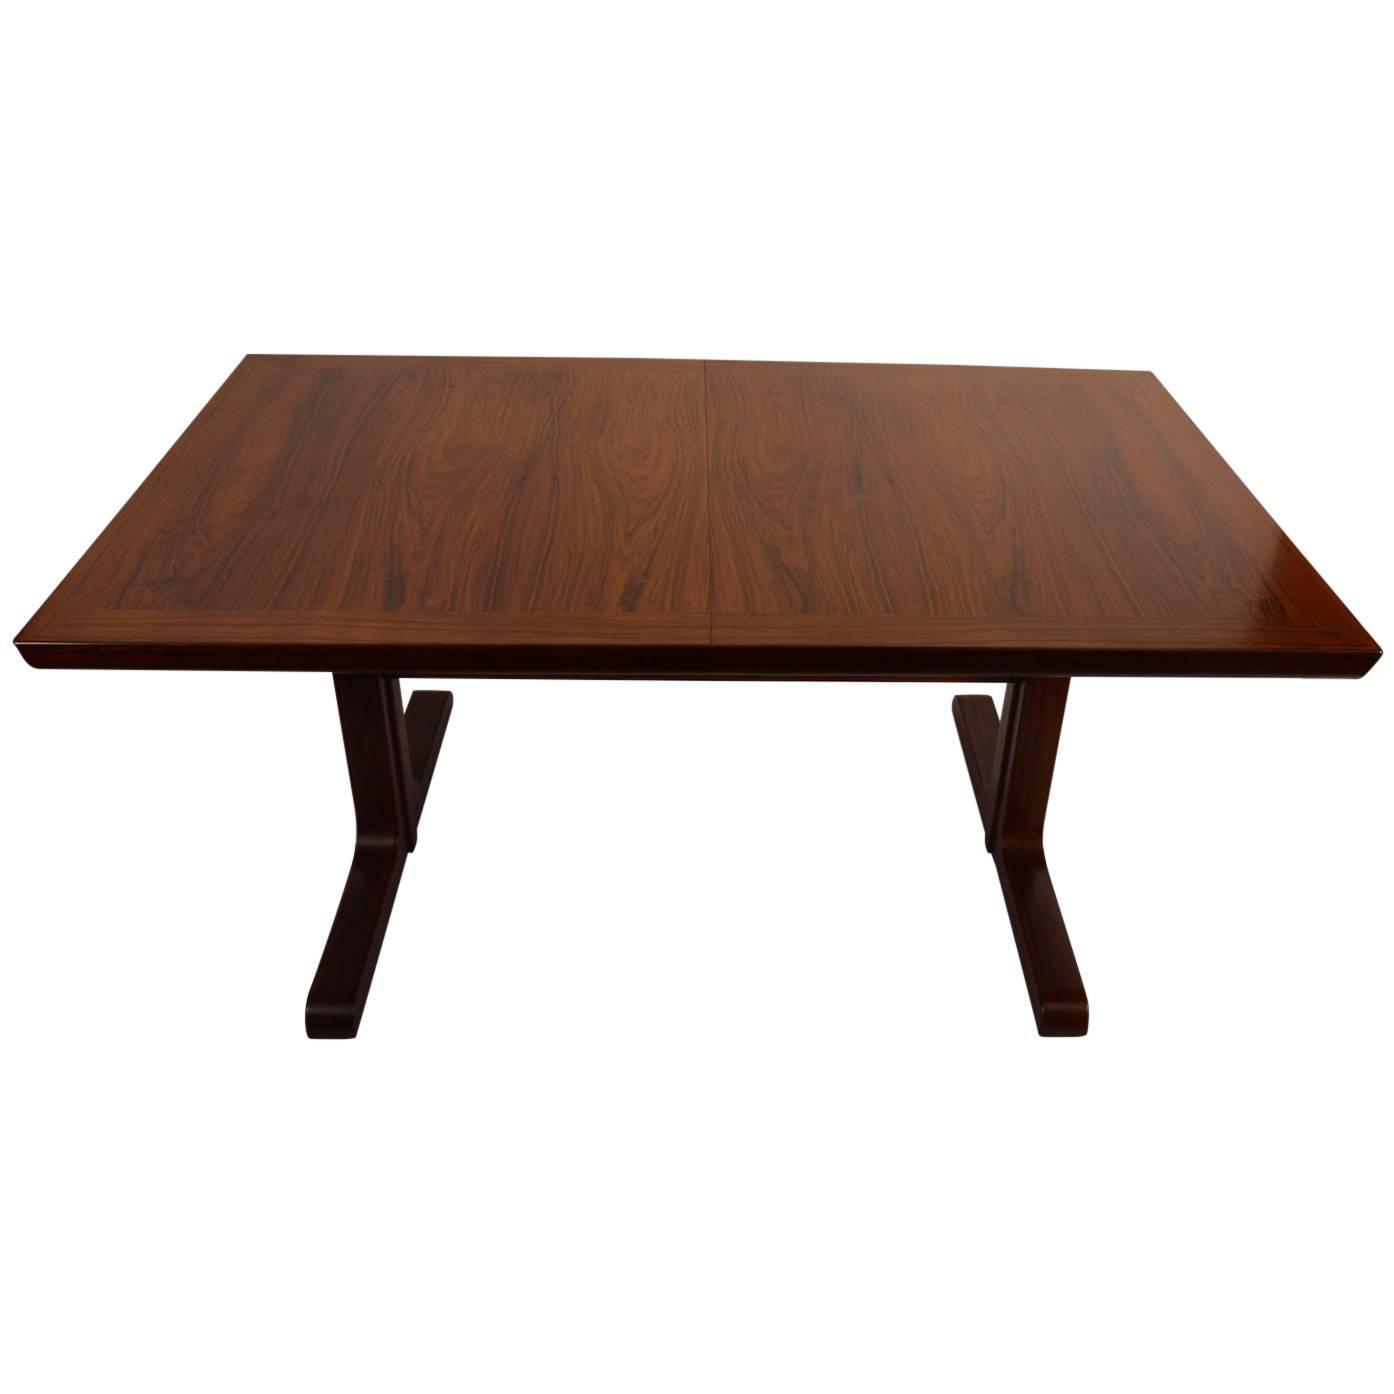 Danish Rosewood Dining Table By Skovby At 1stdibs